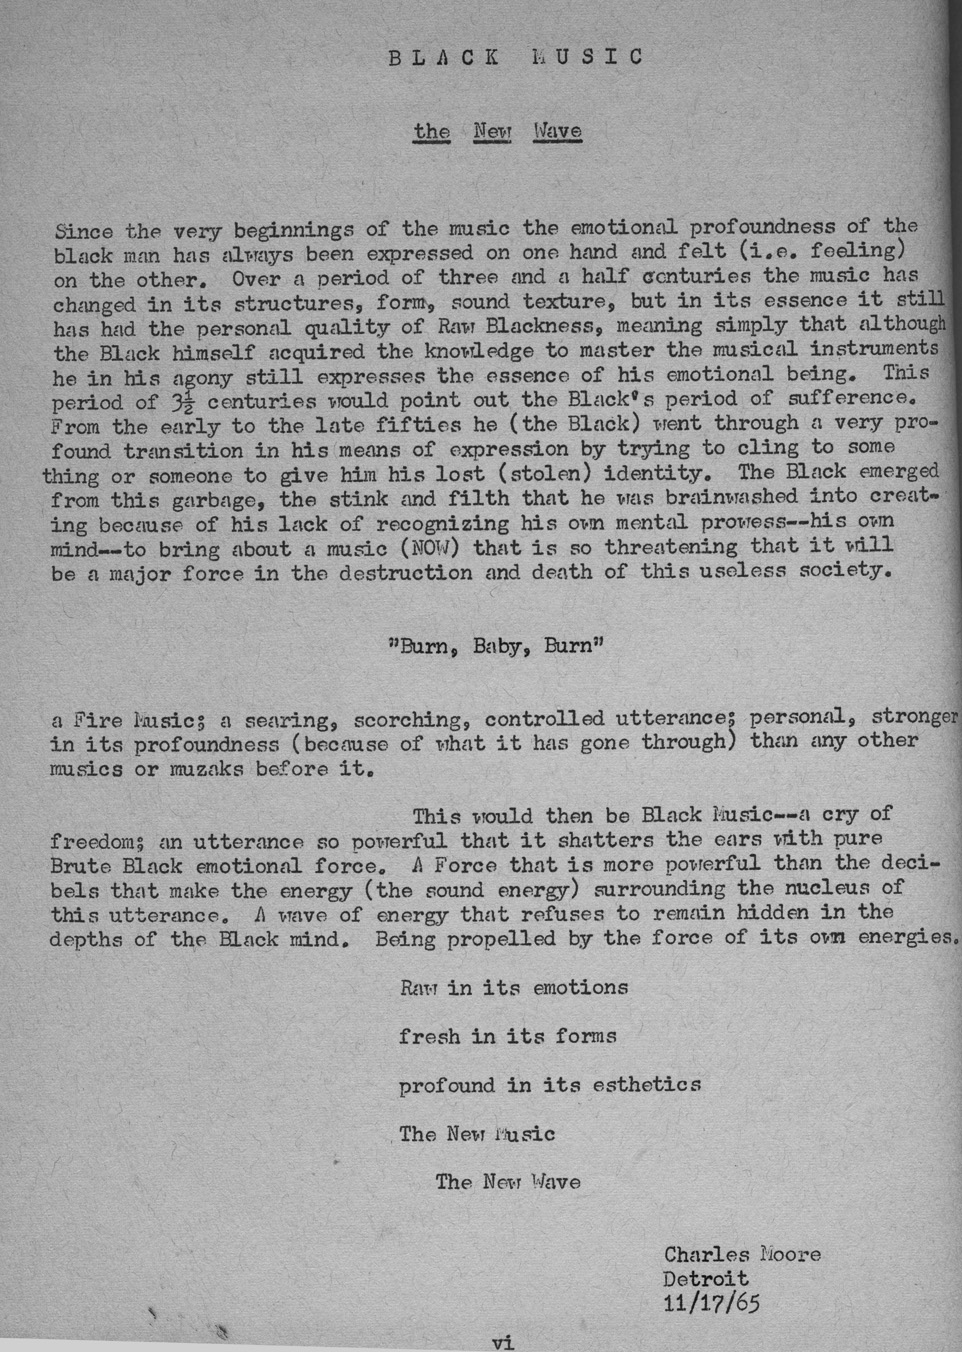 Introduction to Change #1 by Charles Moore, 1965